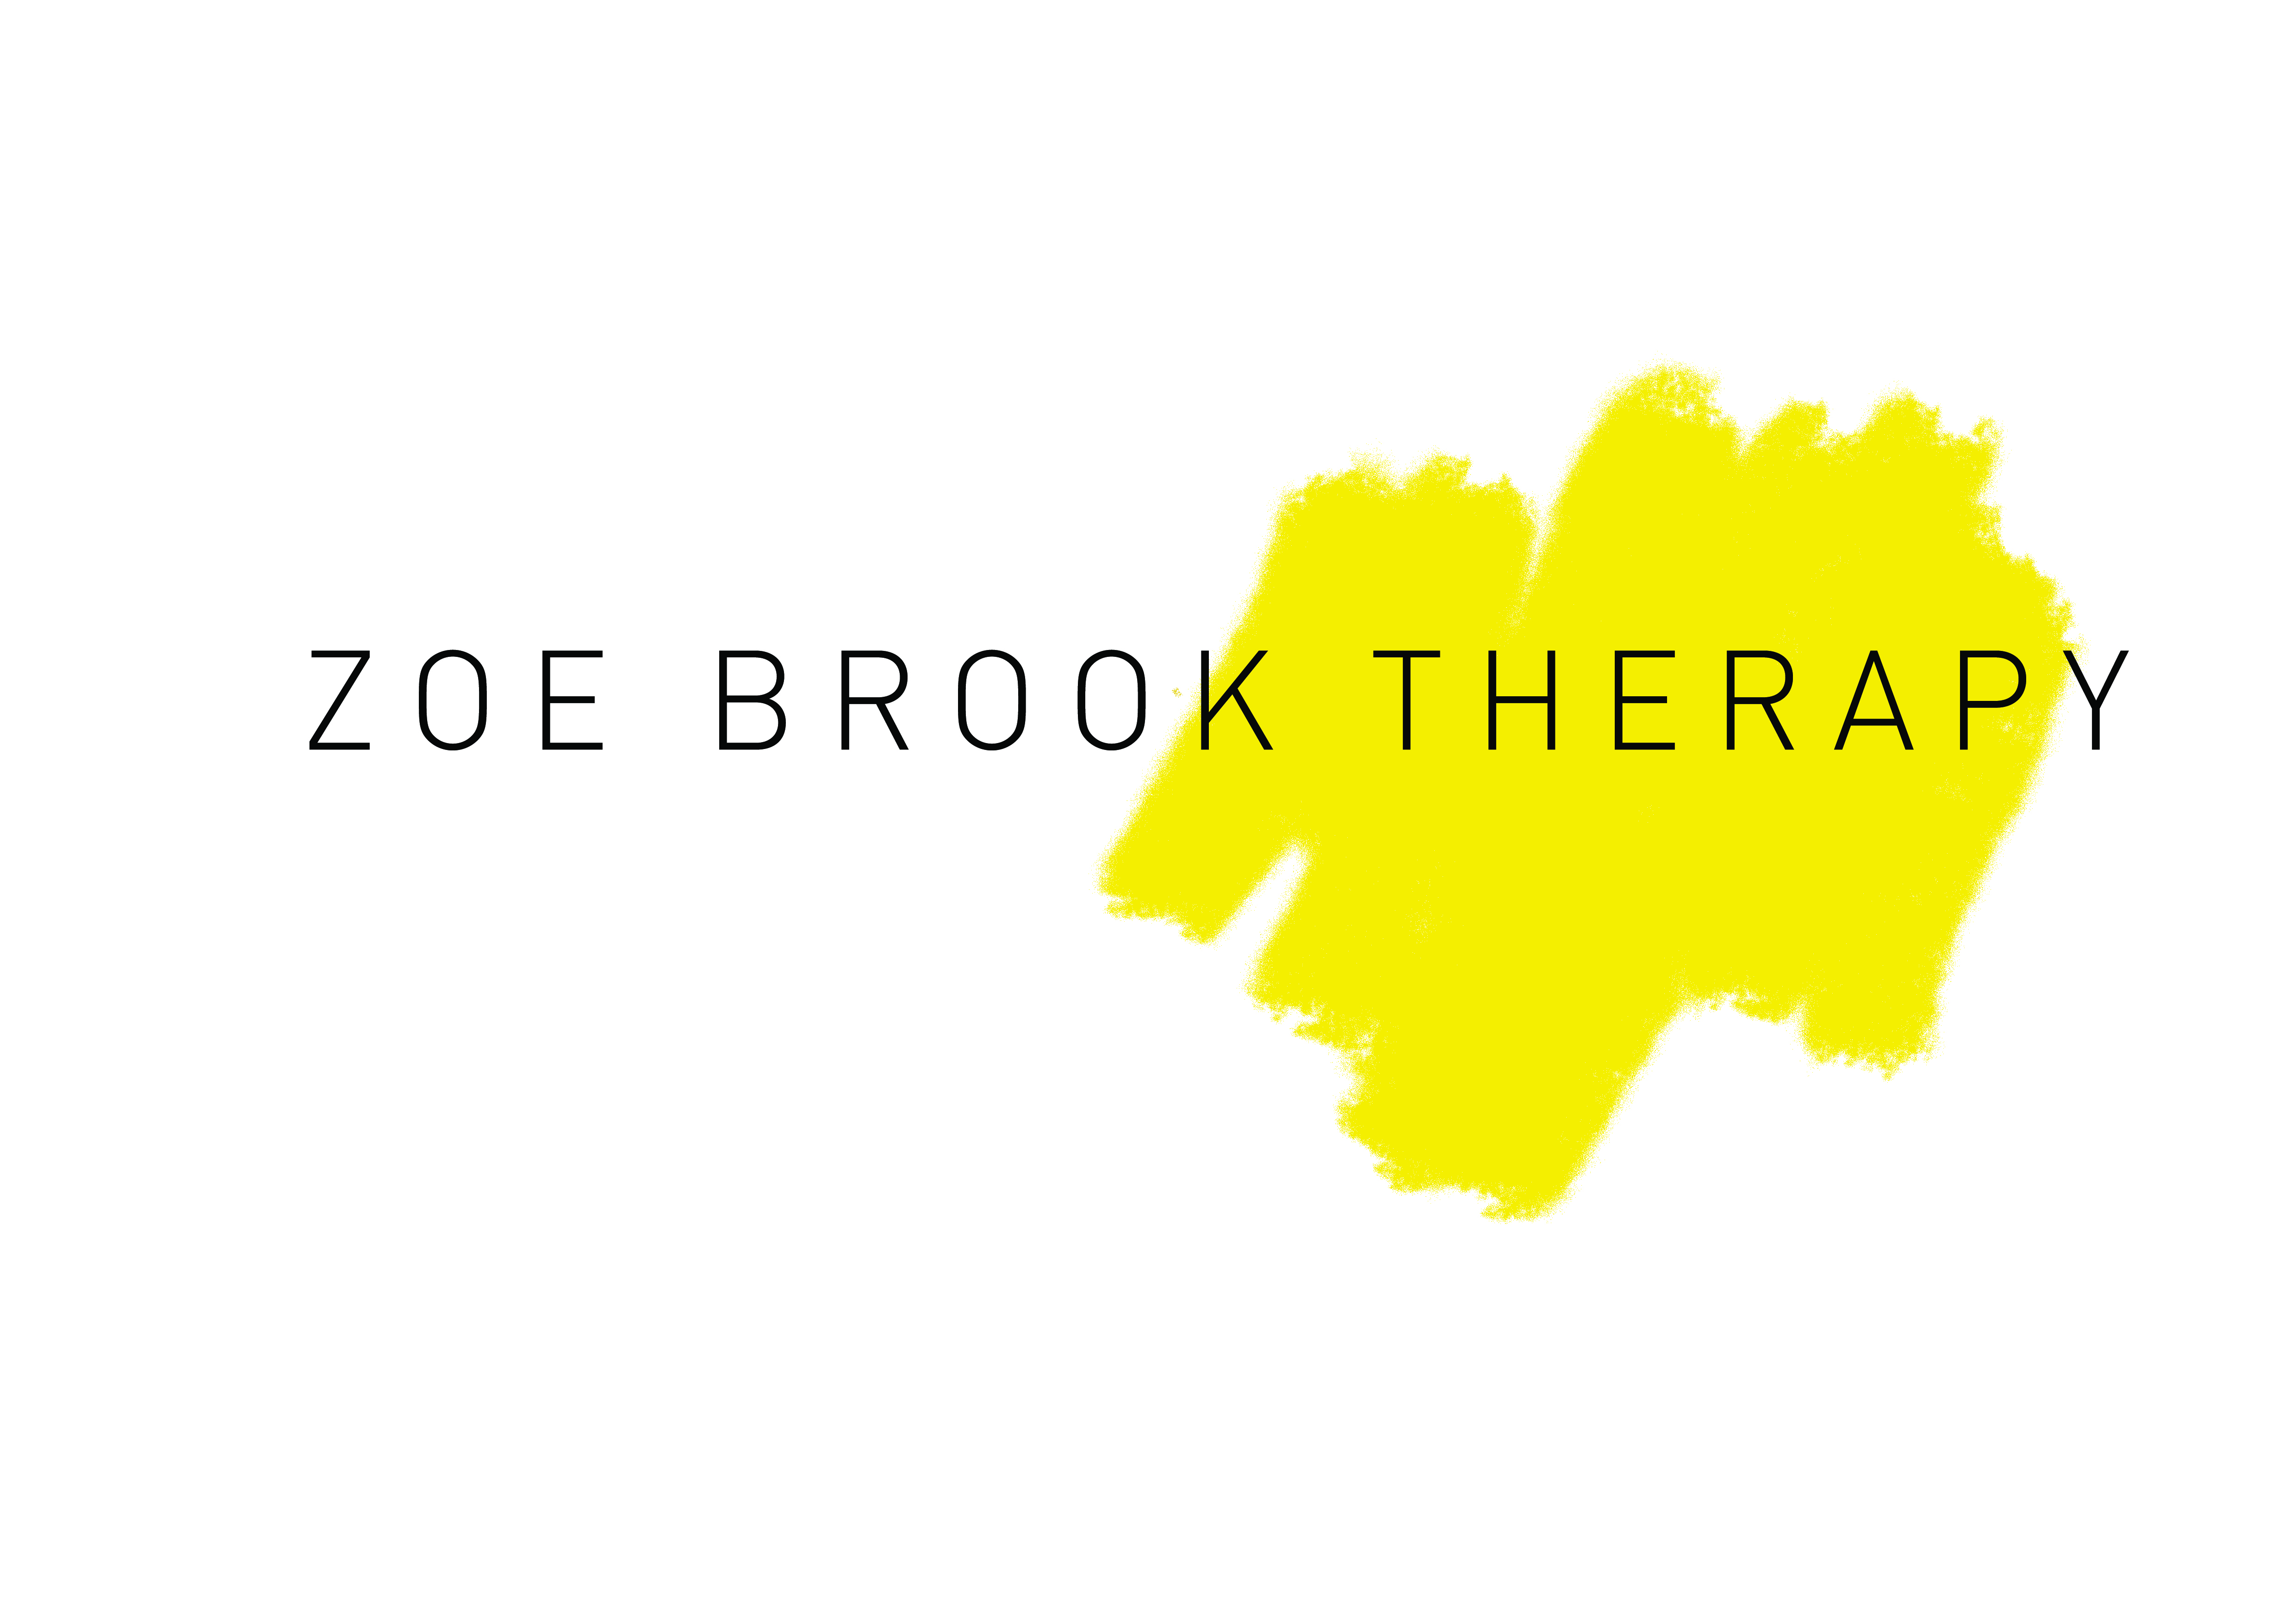 Zoe Brook Therapy